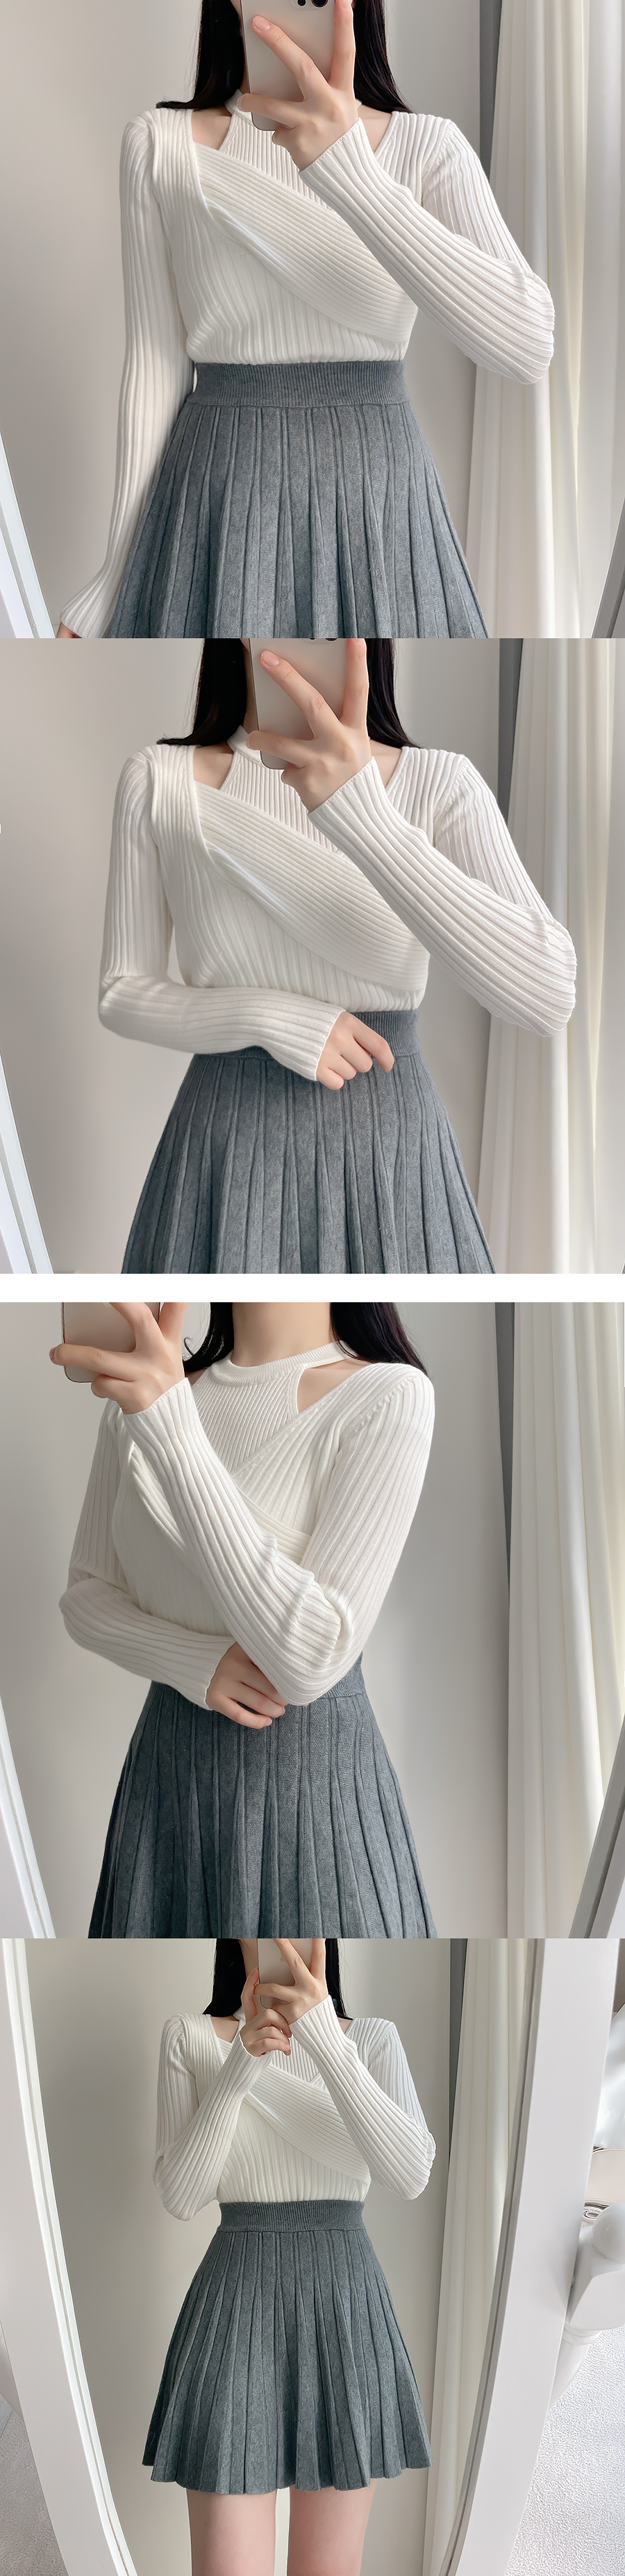 First Ribbed Sleeveless + Lab Knitwear sets 3color